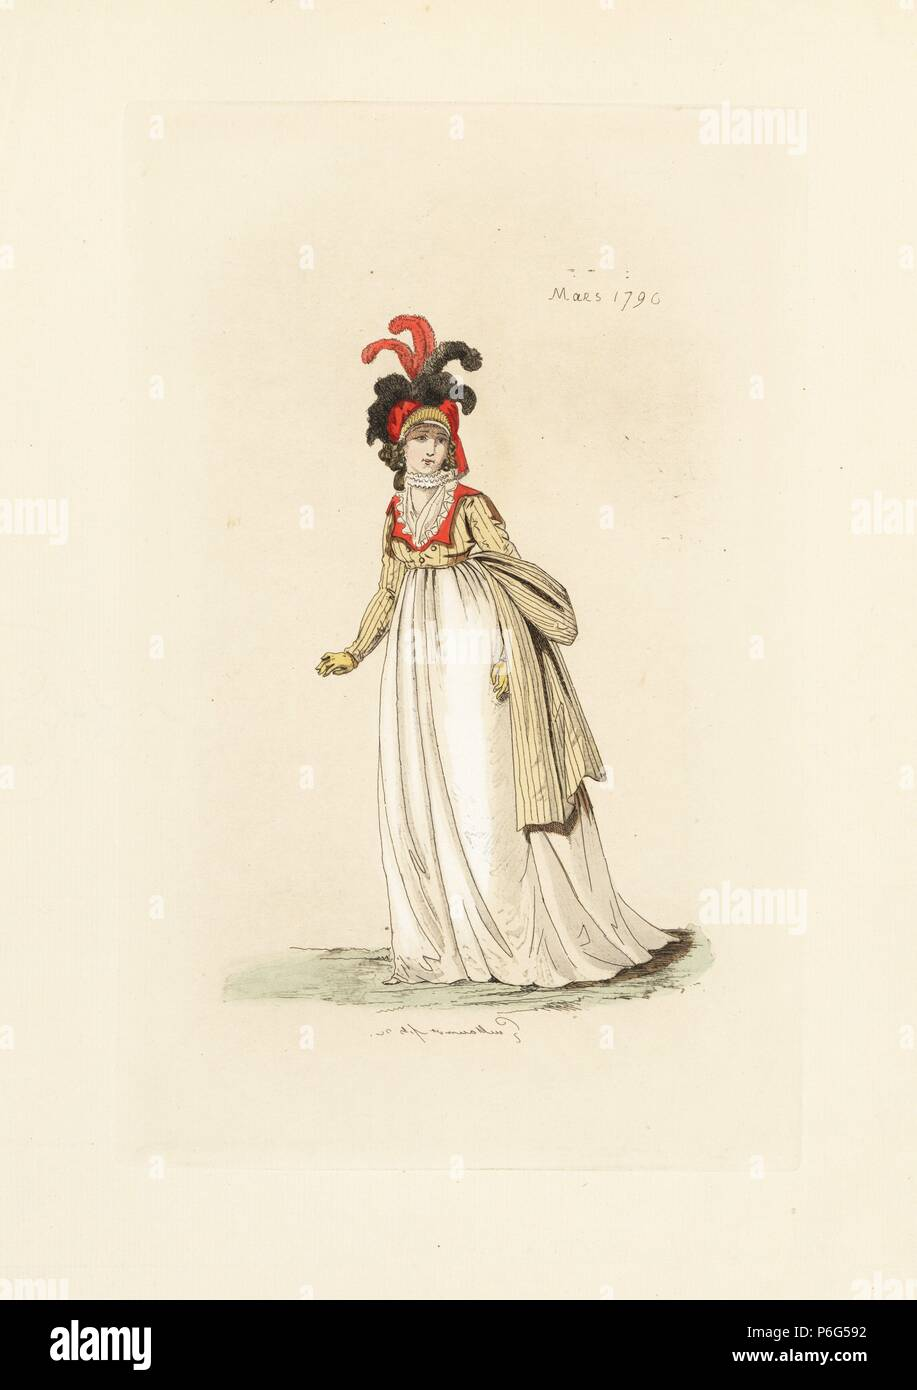 f6c0eada2c5 English woman in the fashion of March 1796. She wears a bonnet with plumes